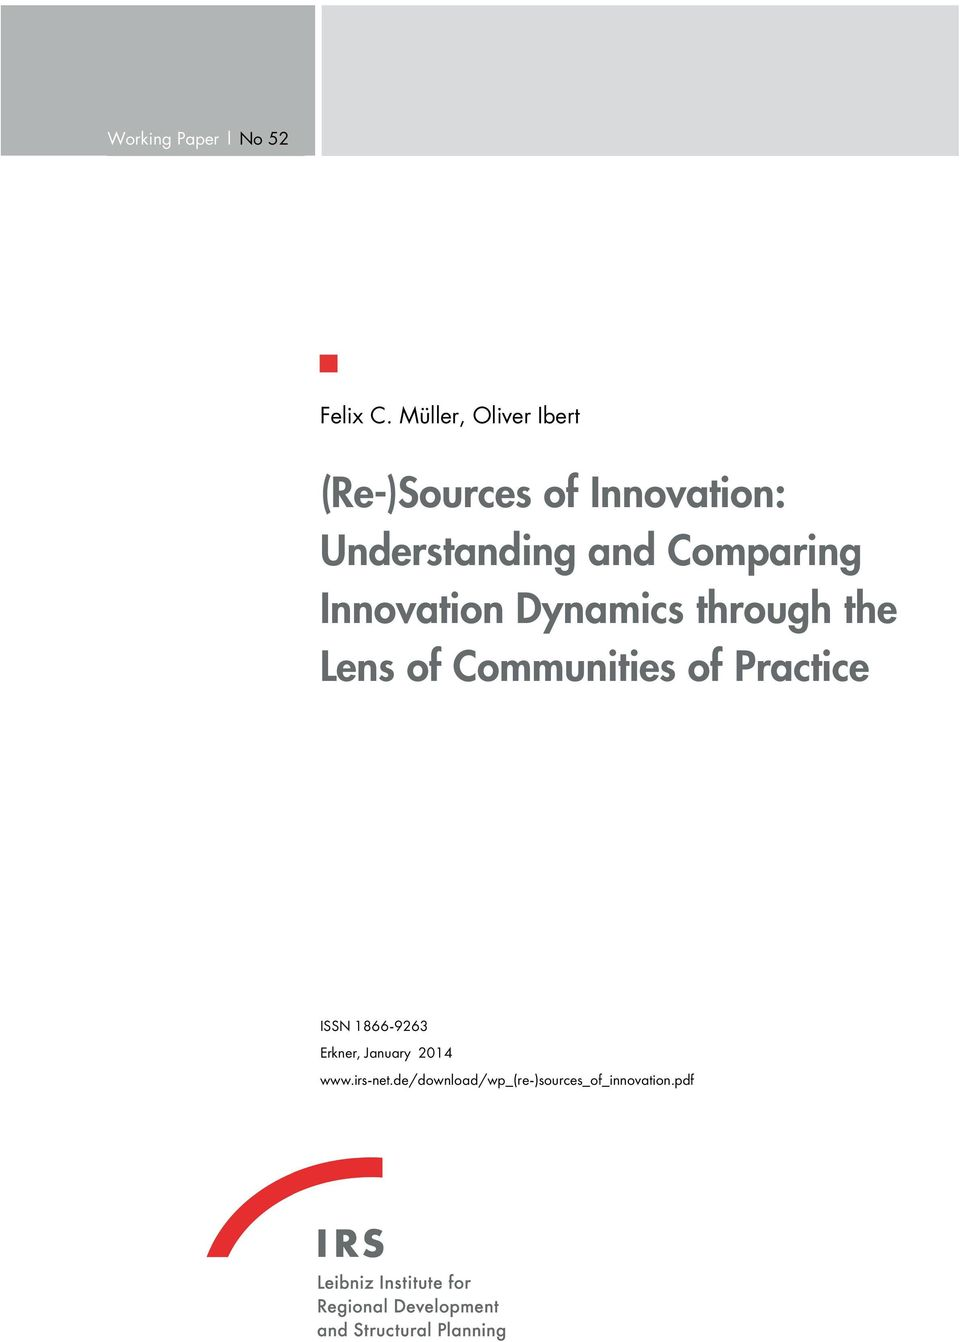 Comparing Innovation Dynamics through the Lens of Communities of